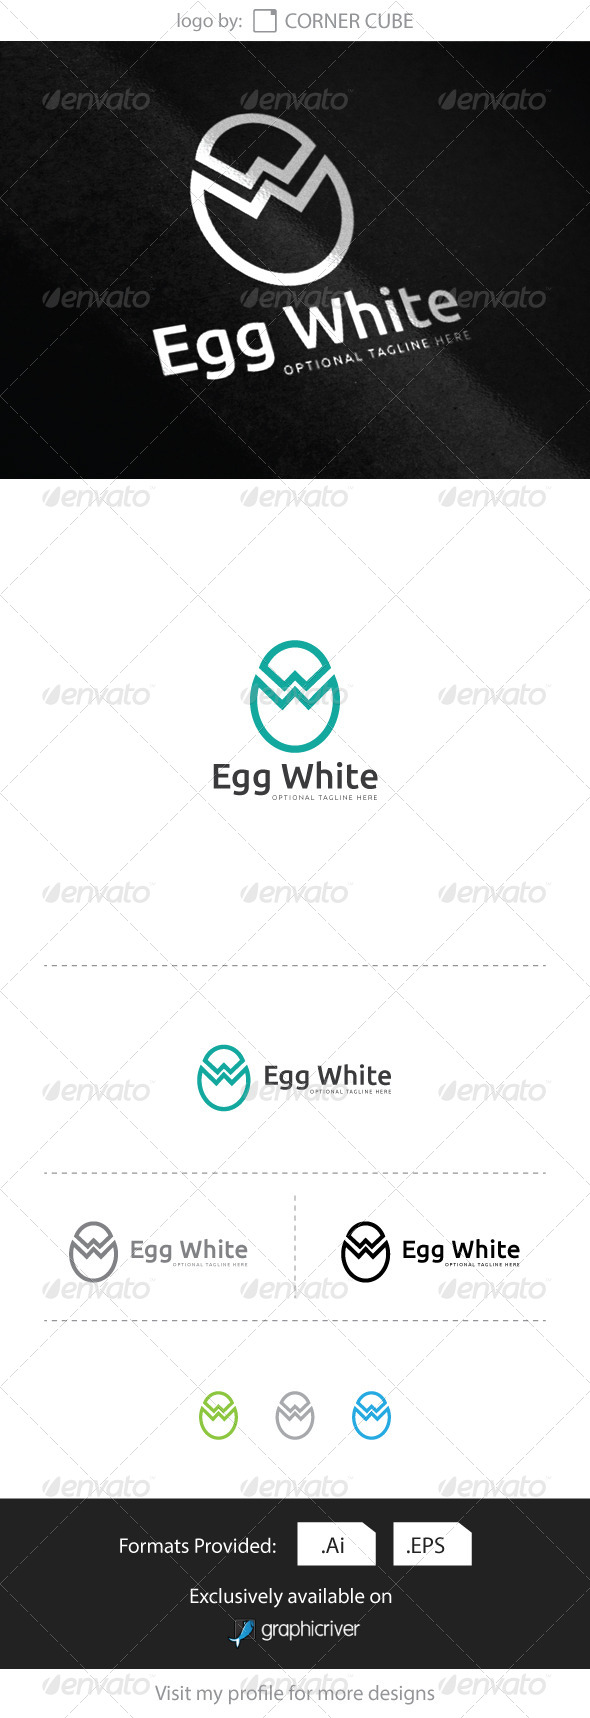 GraphicRiver Egg White logo 8286336